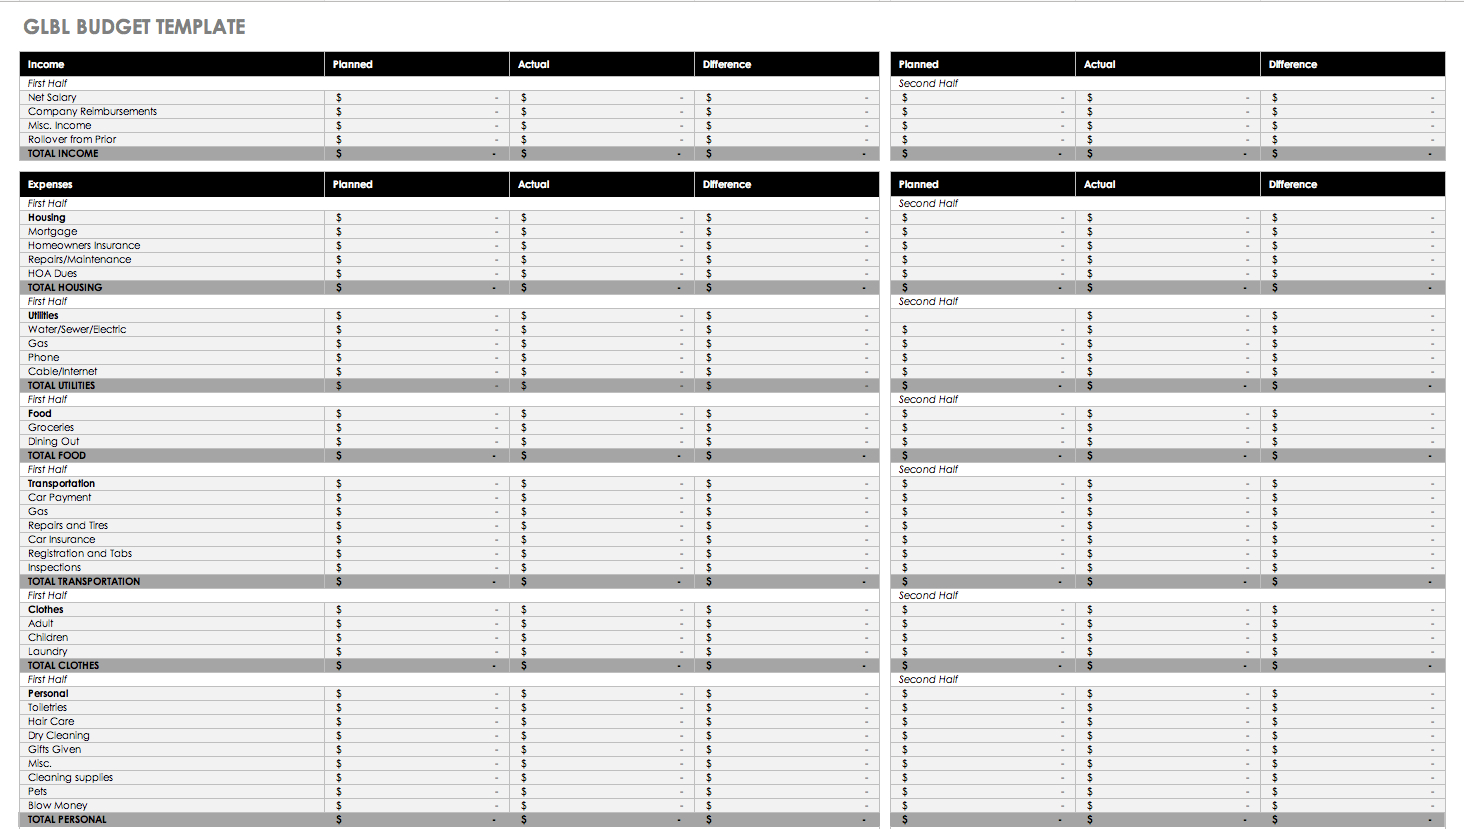 Income And Bills Spreadsheet For Free Budget Templates In Excel For Any Use